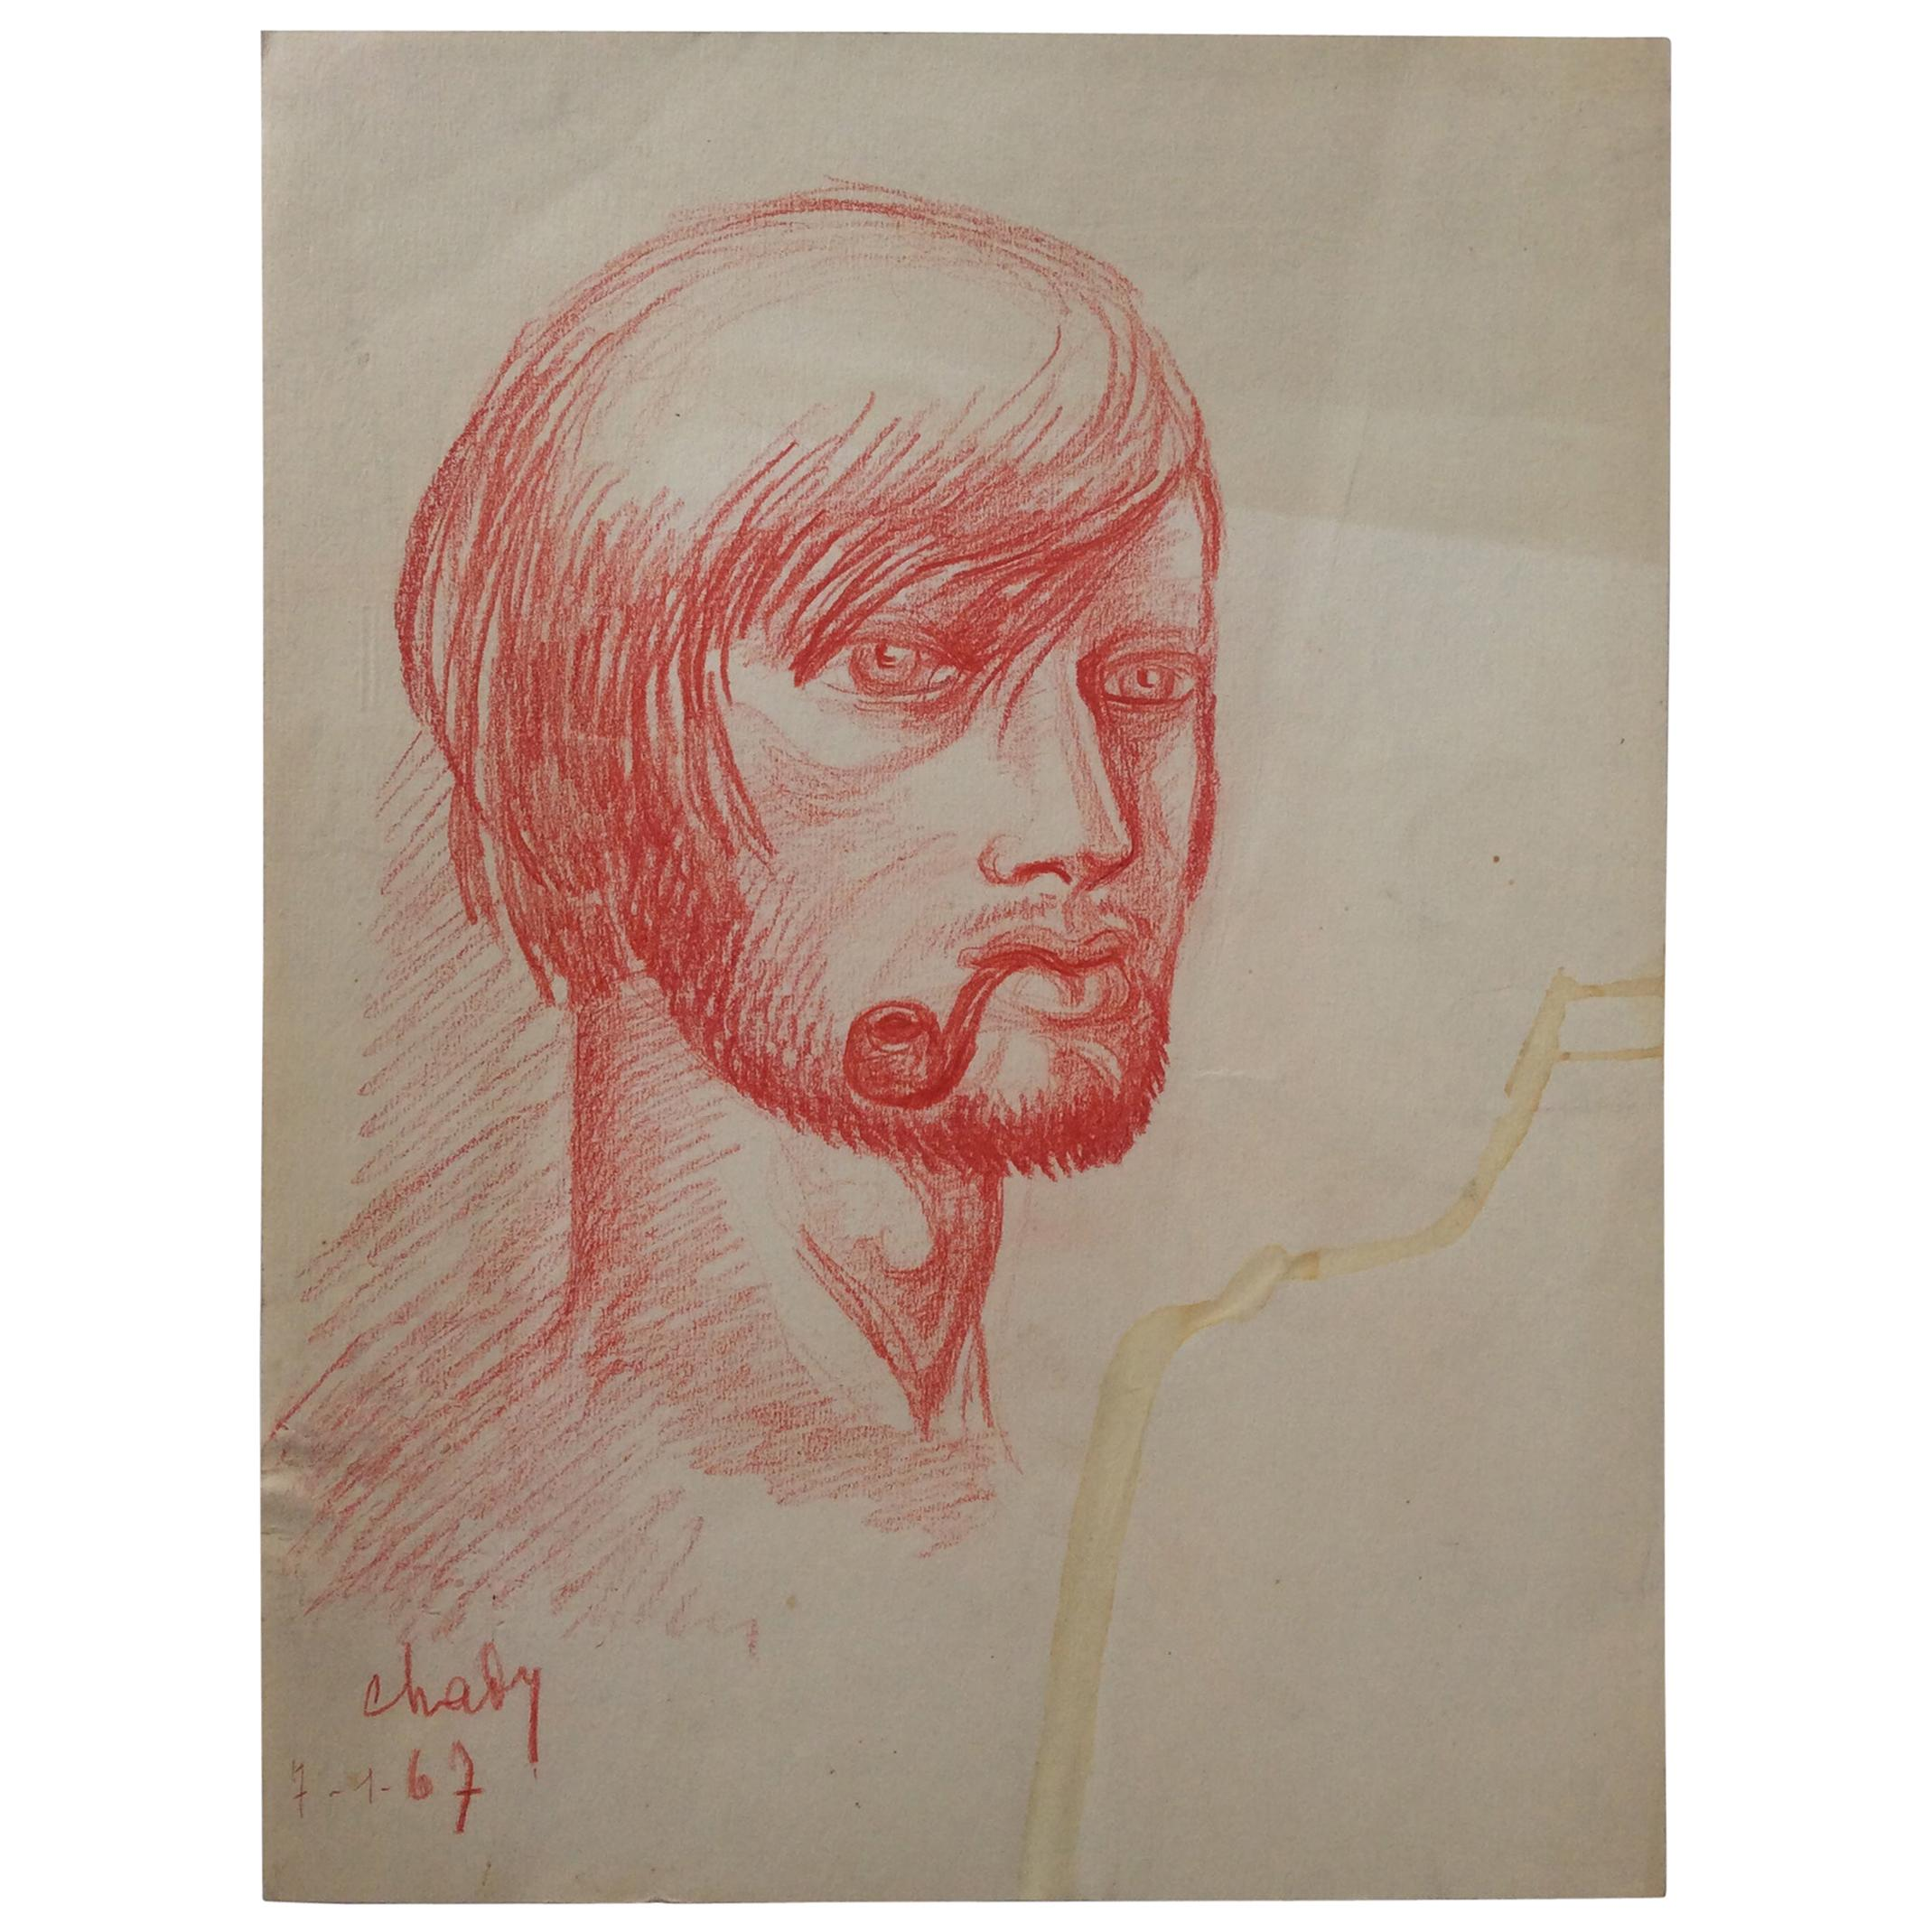 Midcentury Original Portrait Drawing Signed Chady, Dated 1967